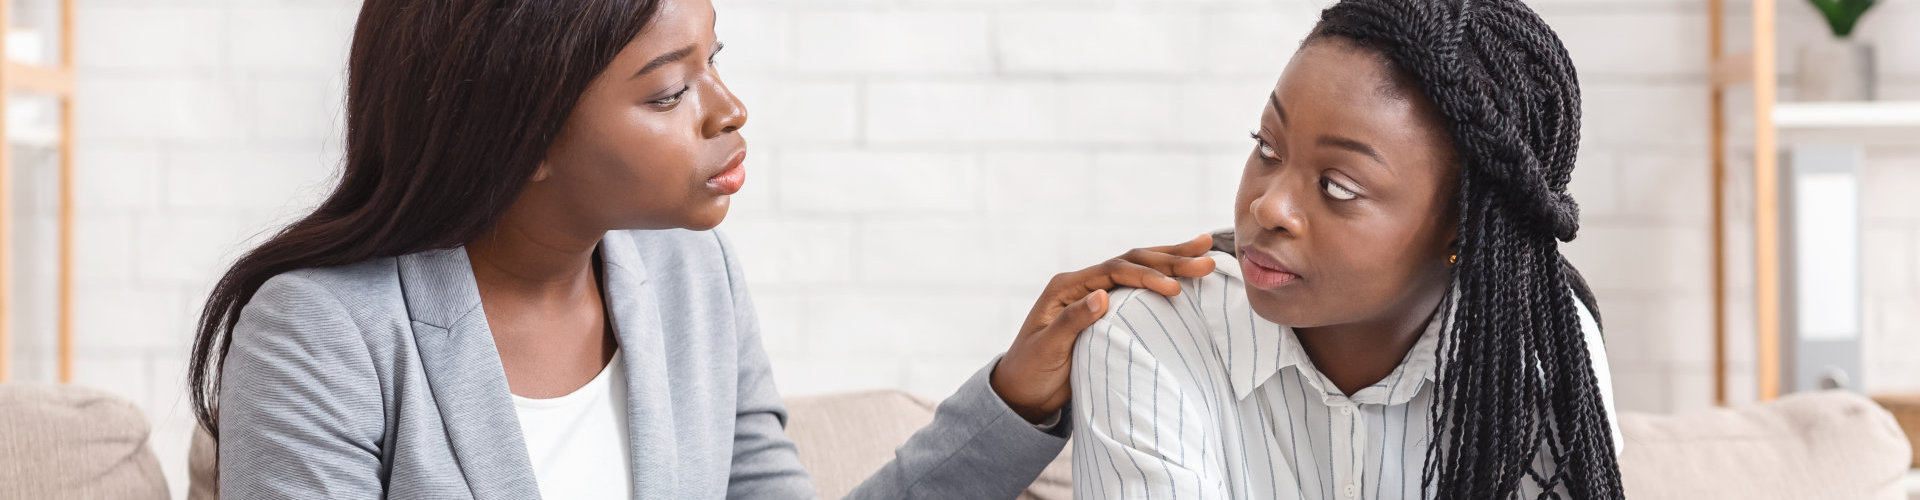 Psychotherapist comforting sad female patient during therapy session in office